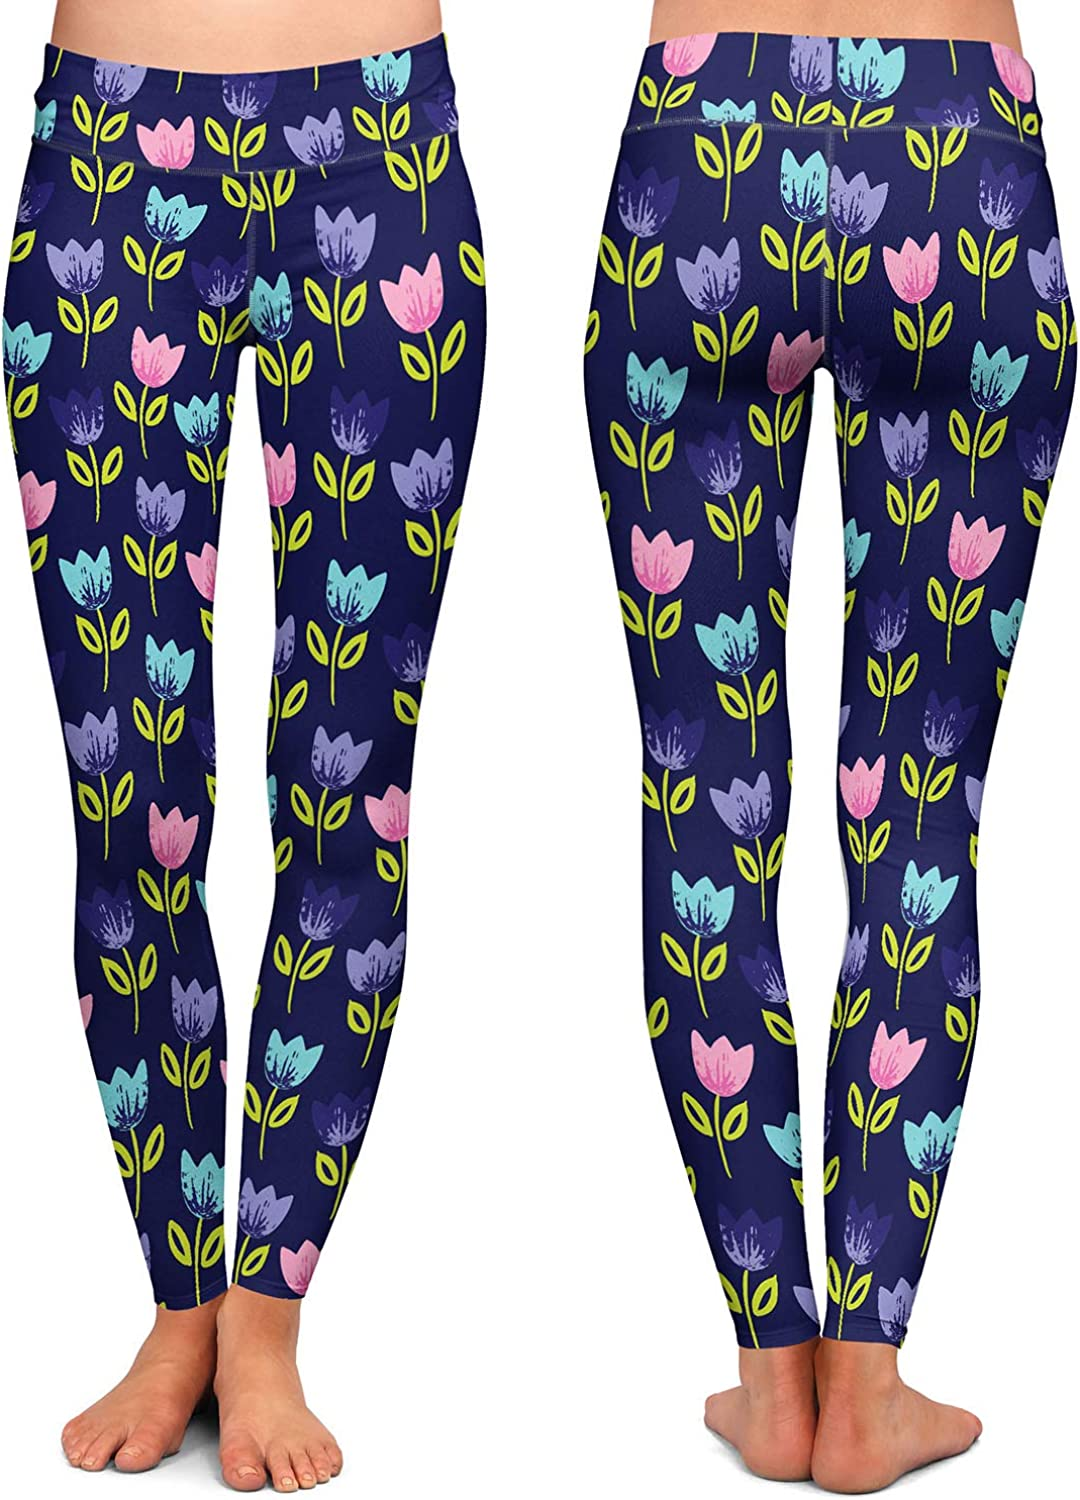 Bugs Tulips Athletic Yoga Leggings from DiaNoche Designs by Metka Hiti